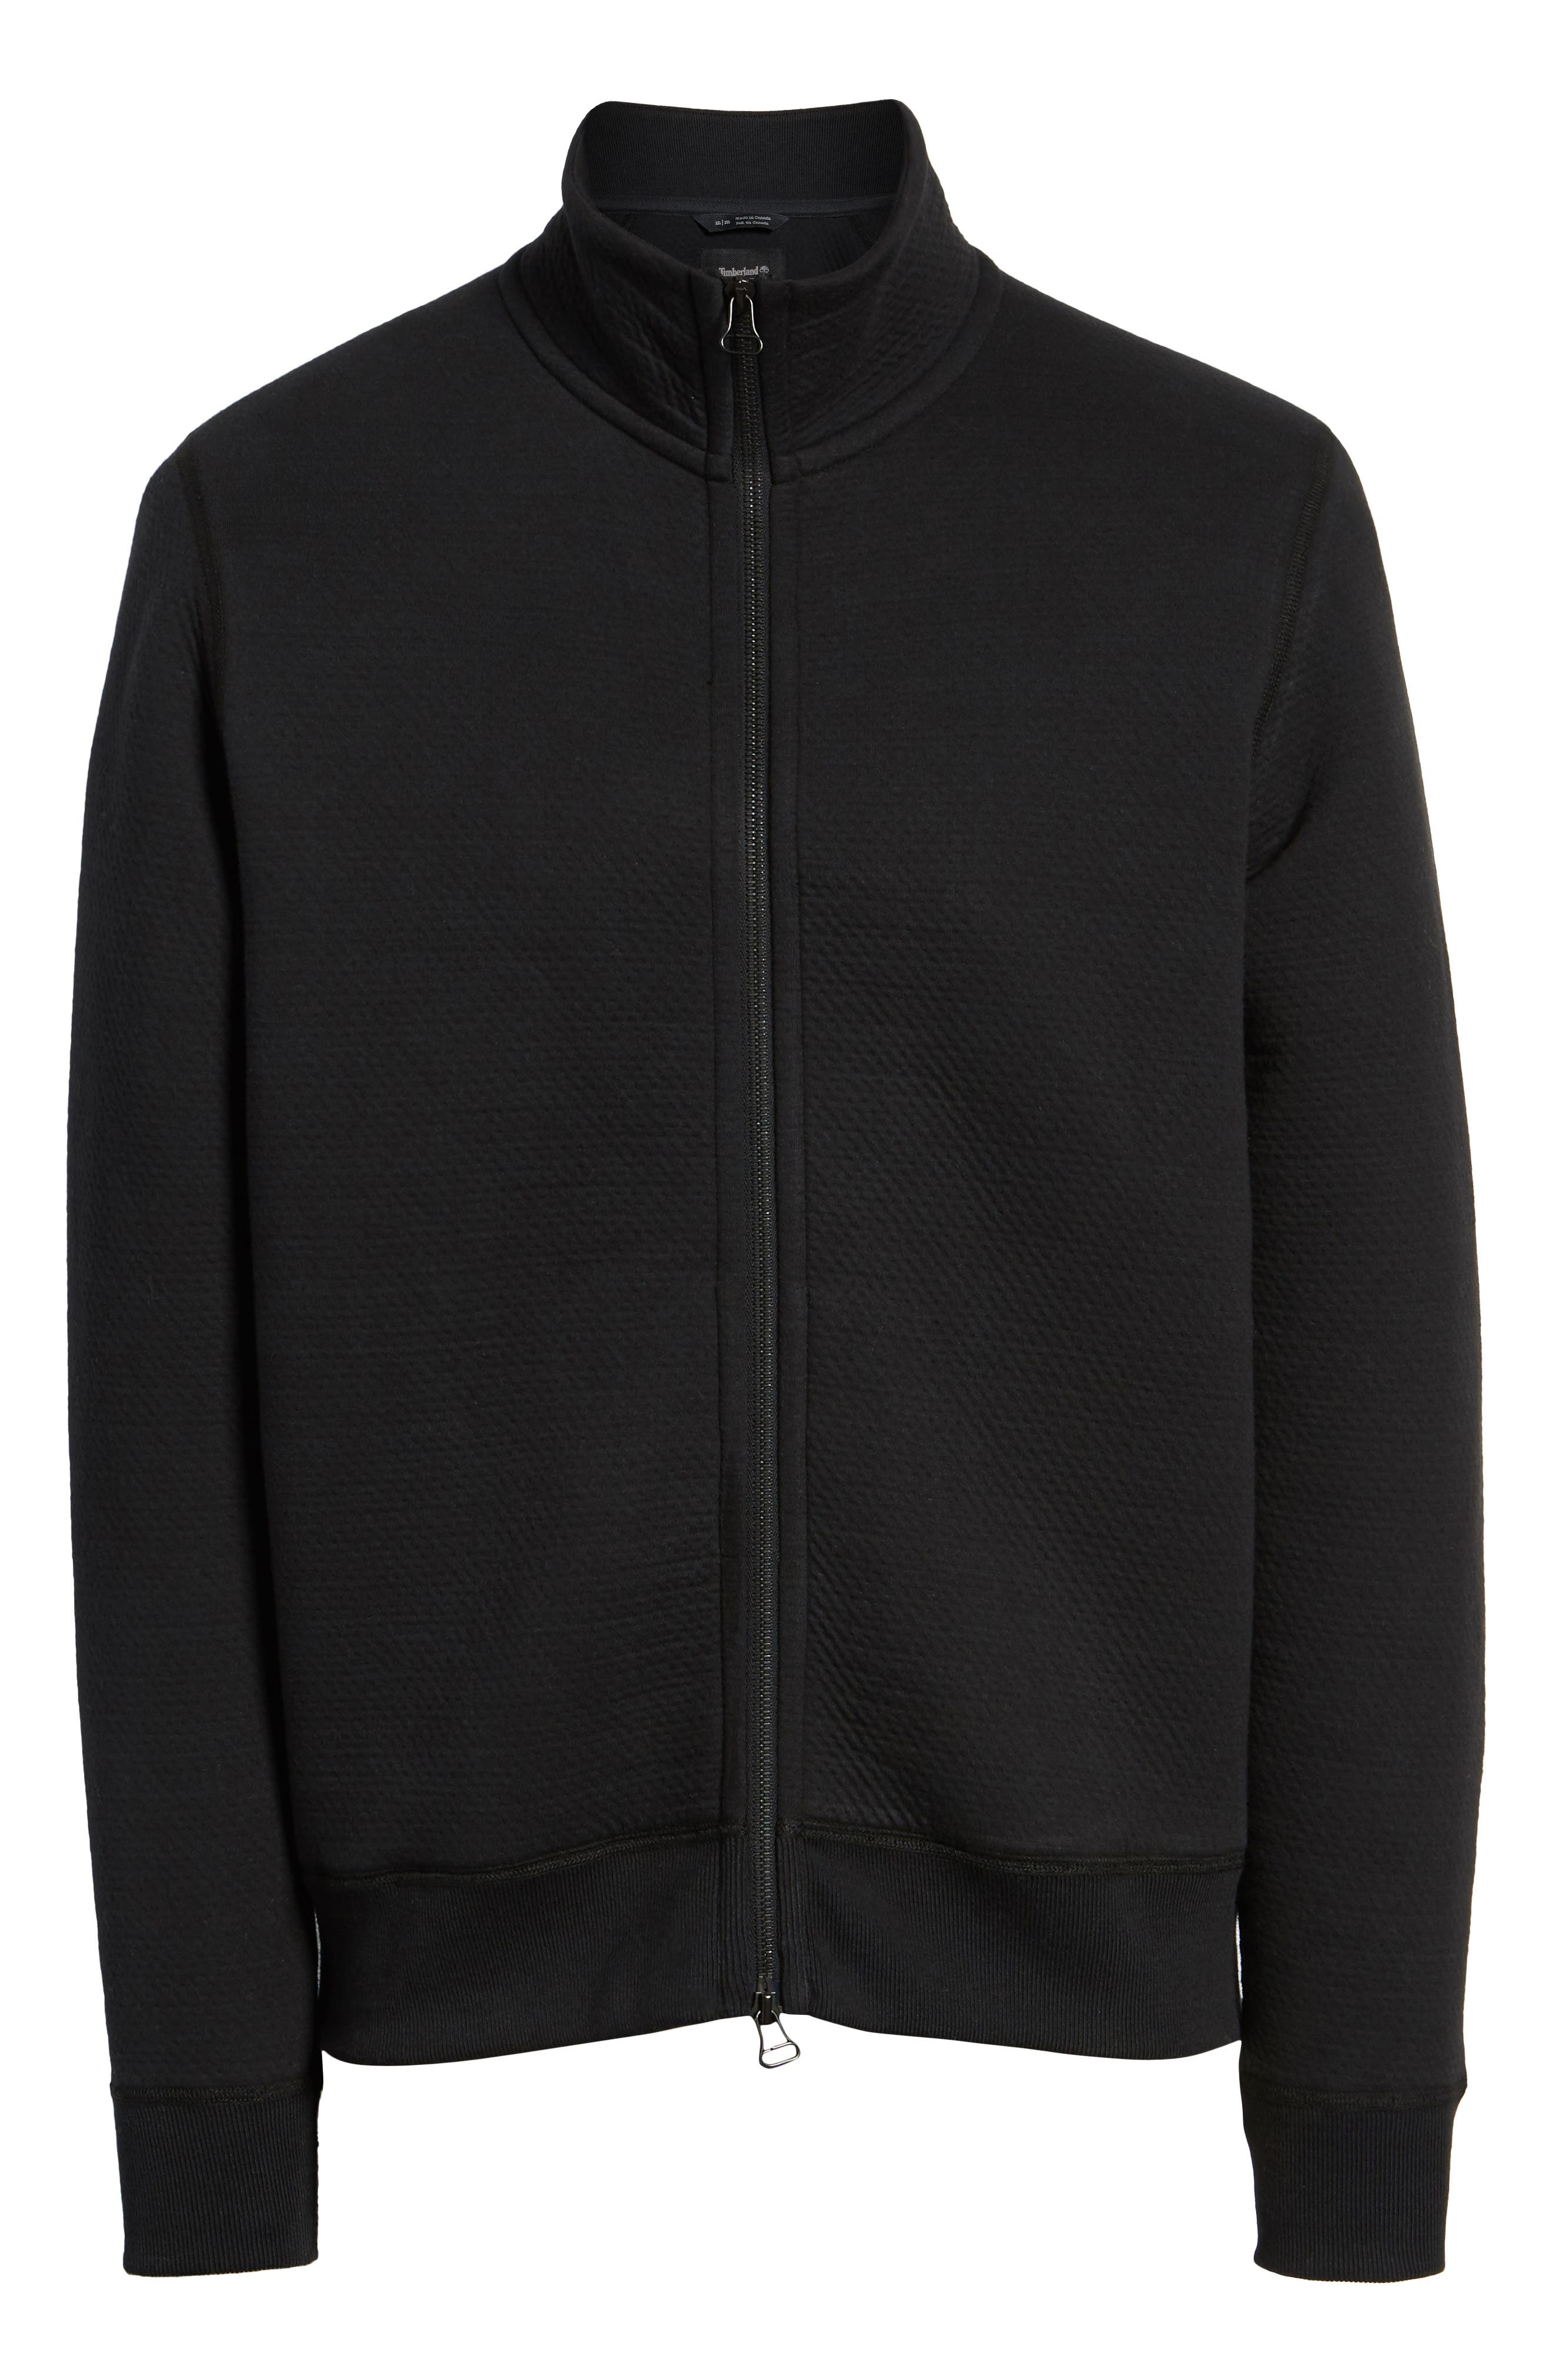 Cabin Fleece Jacket,                             Alternate thumbnail 6, color,                             BLACK